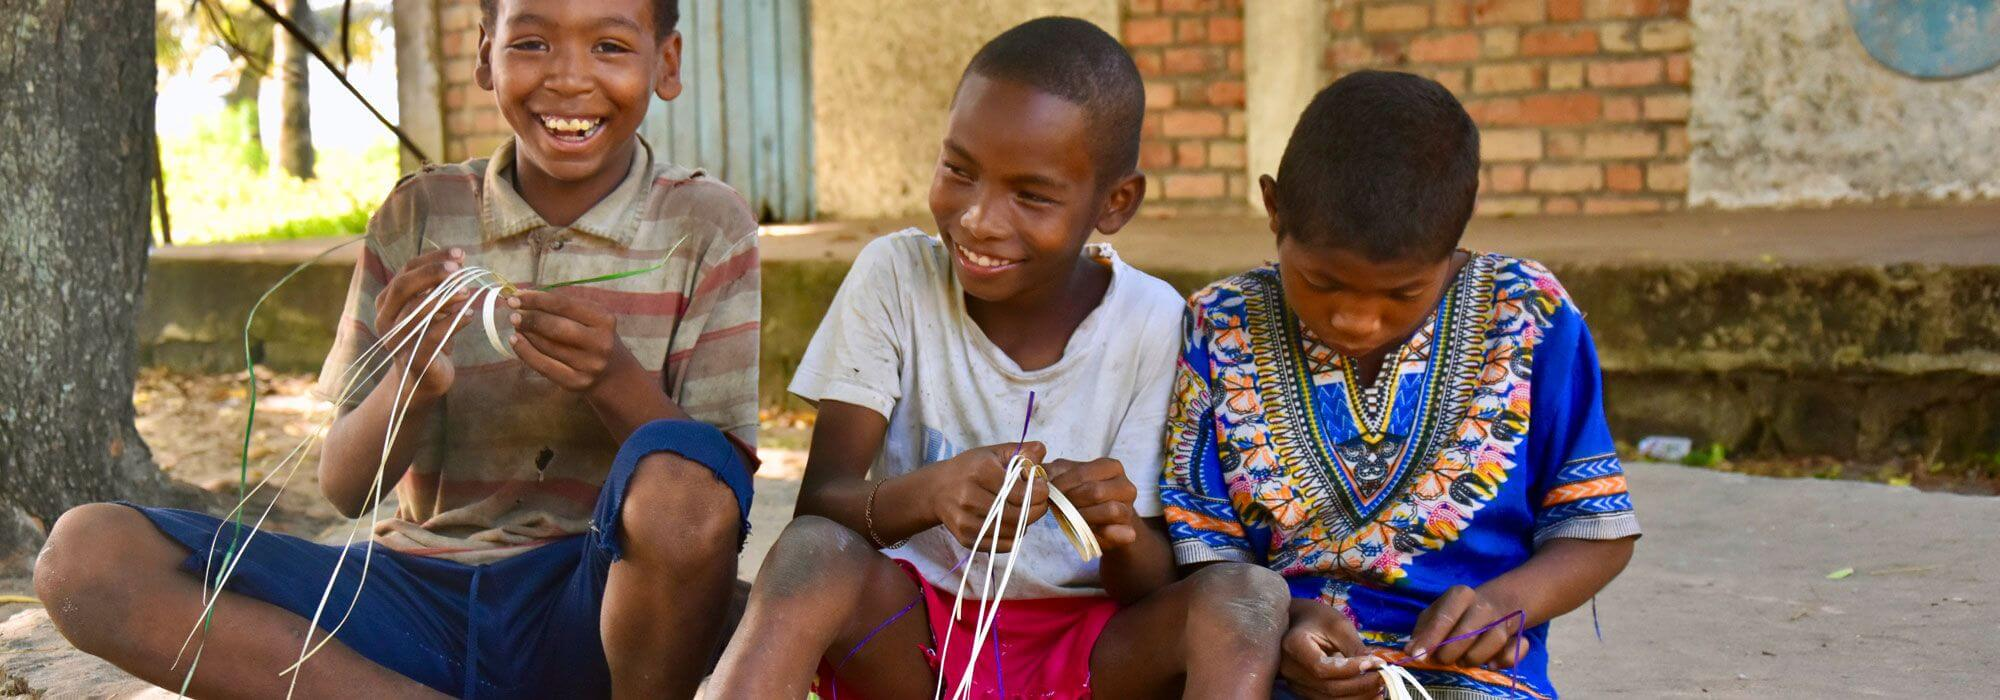 mahampy-children-weaving-bracelets-sainte-luce-outreach-youth.jpg